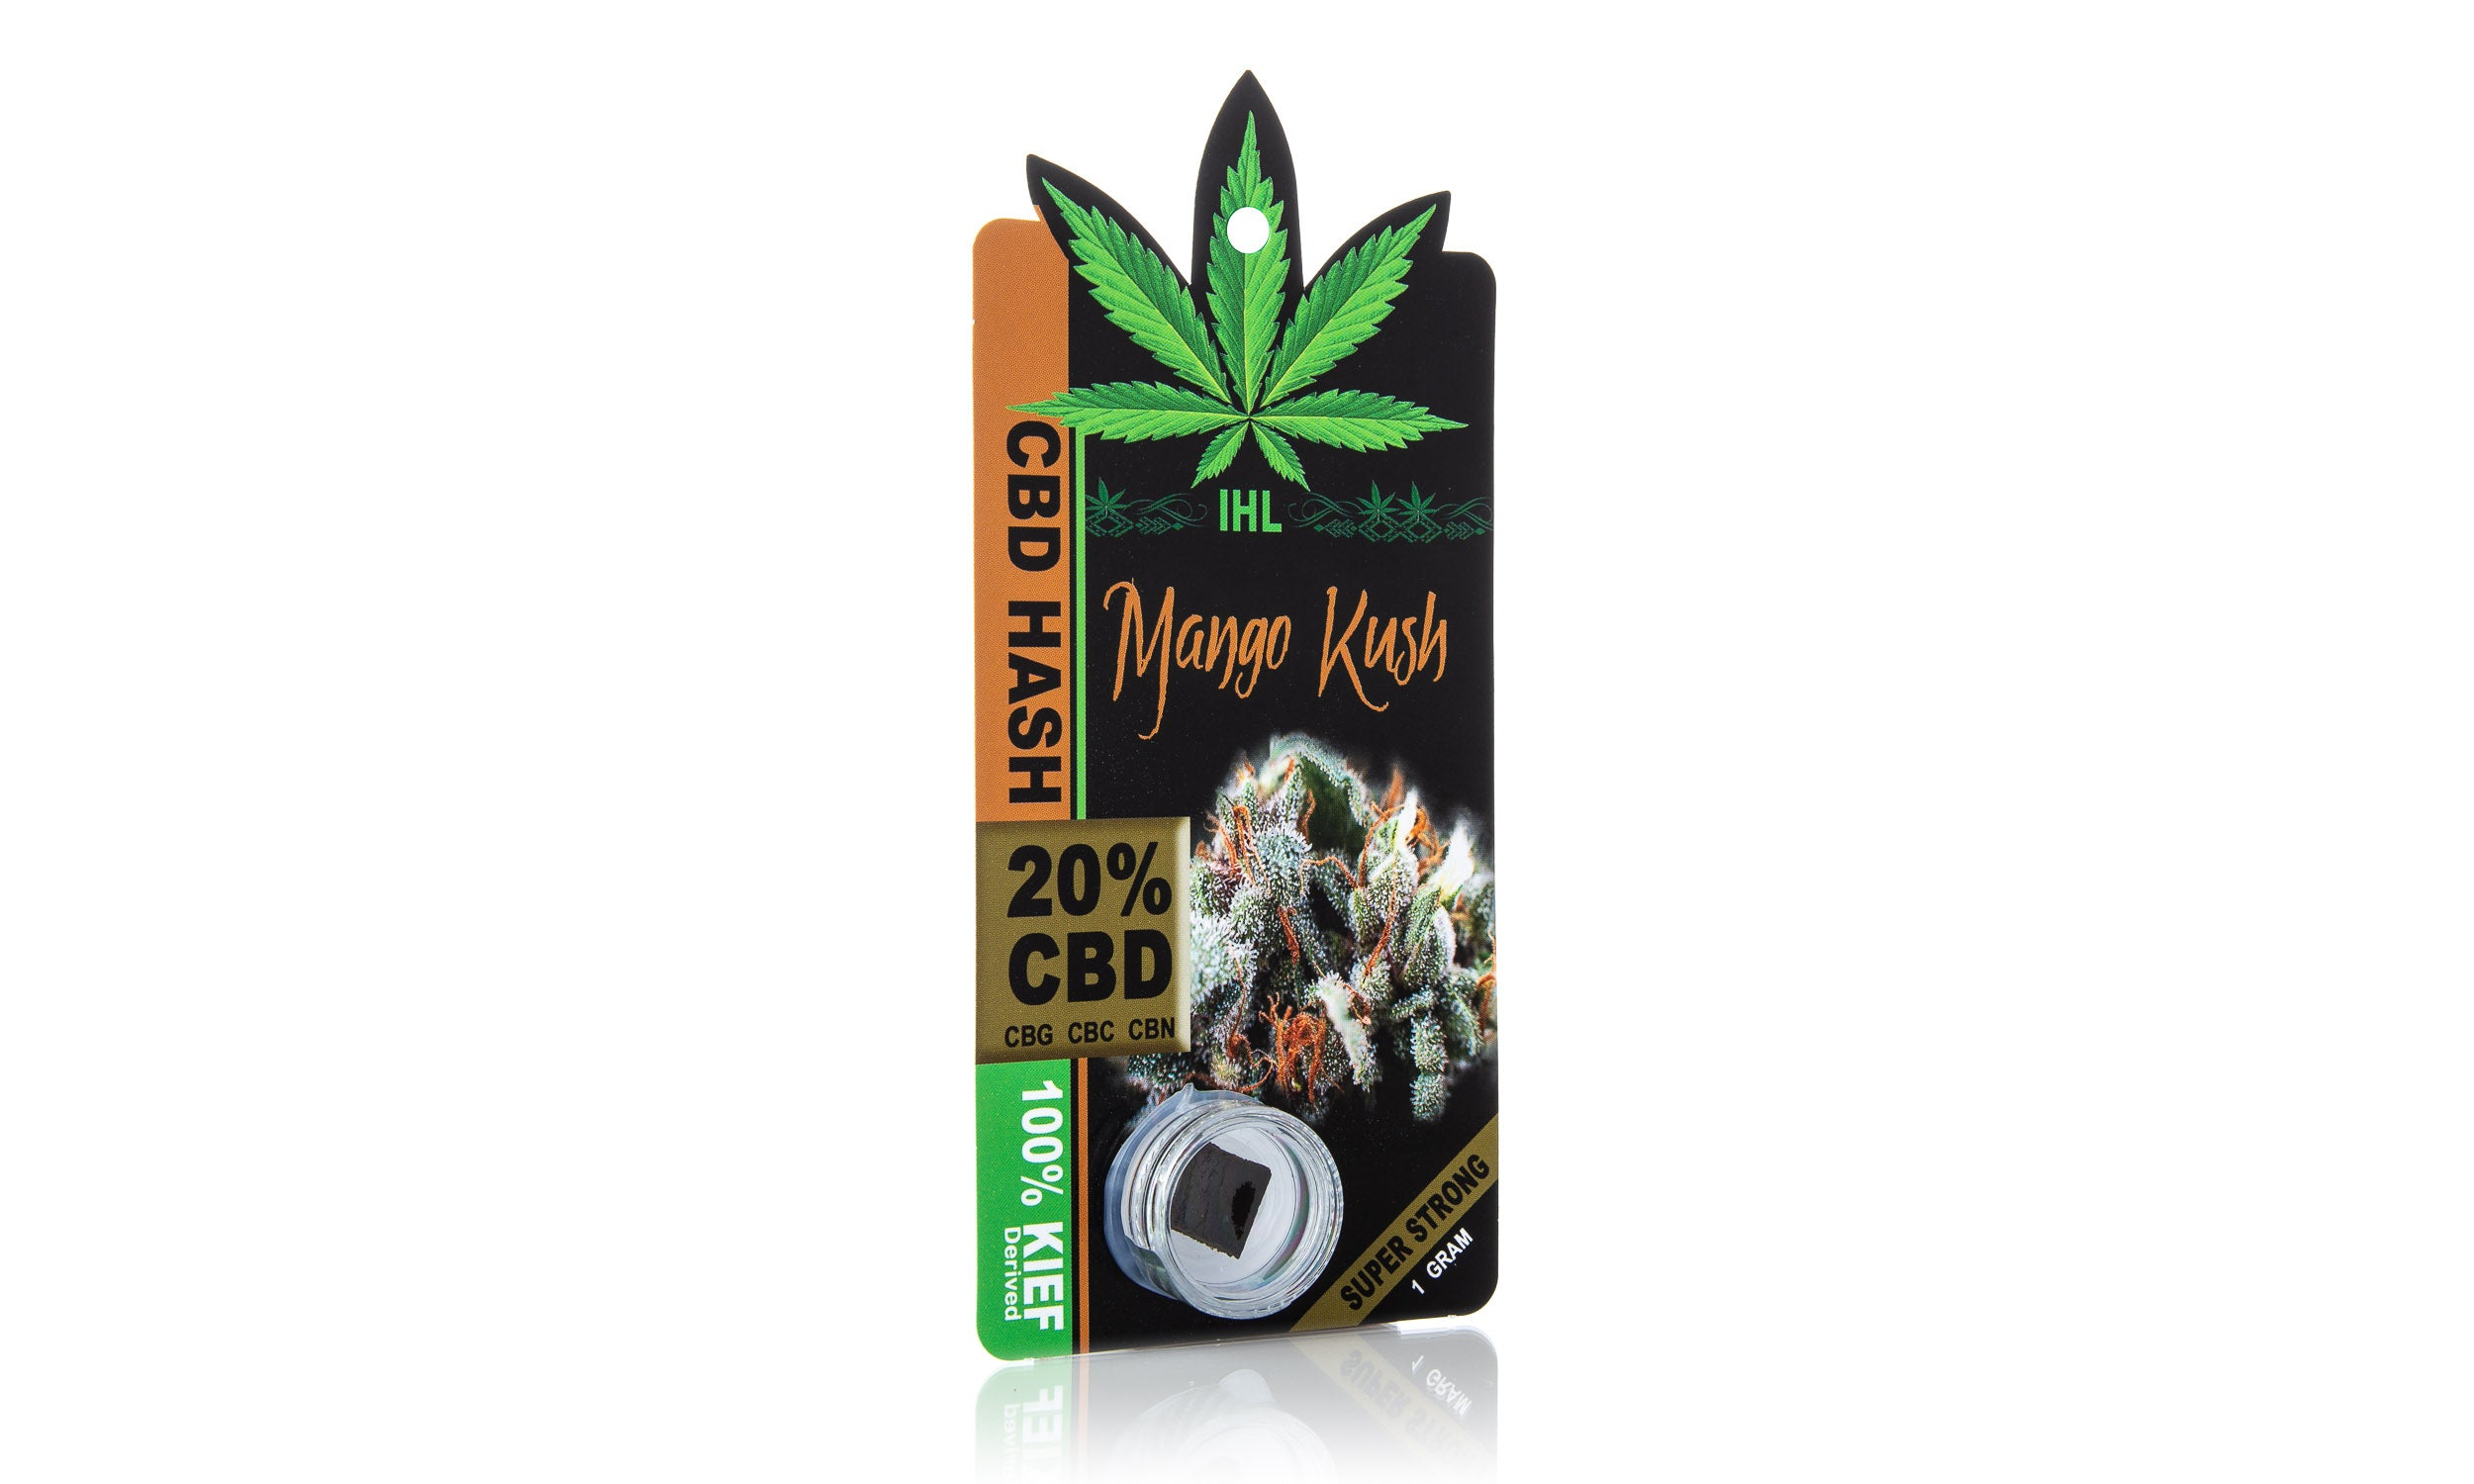 IHL 20% CBD Sativa Black Hash - Lake shore vibe